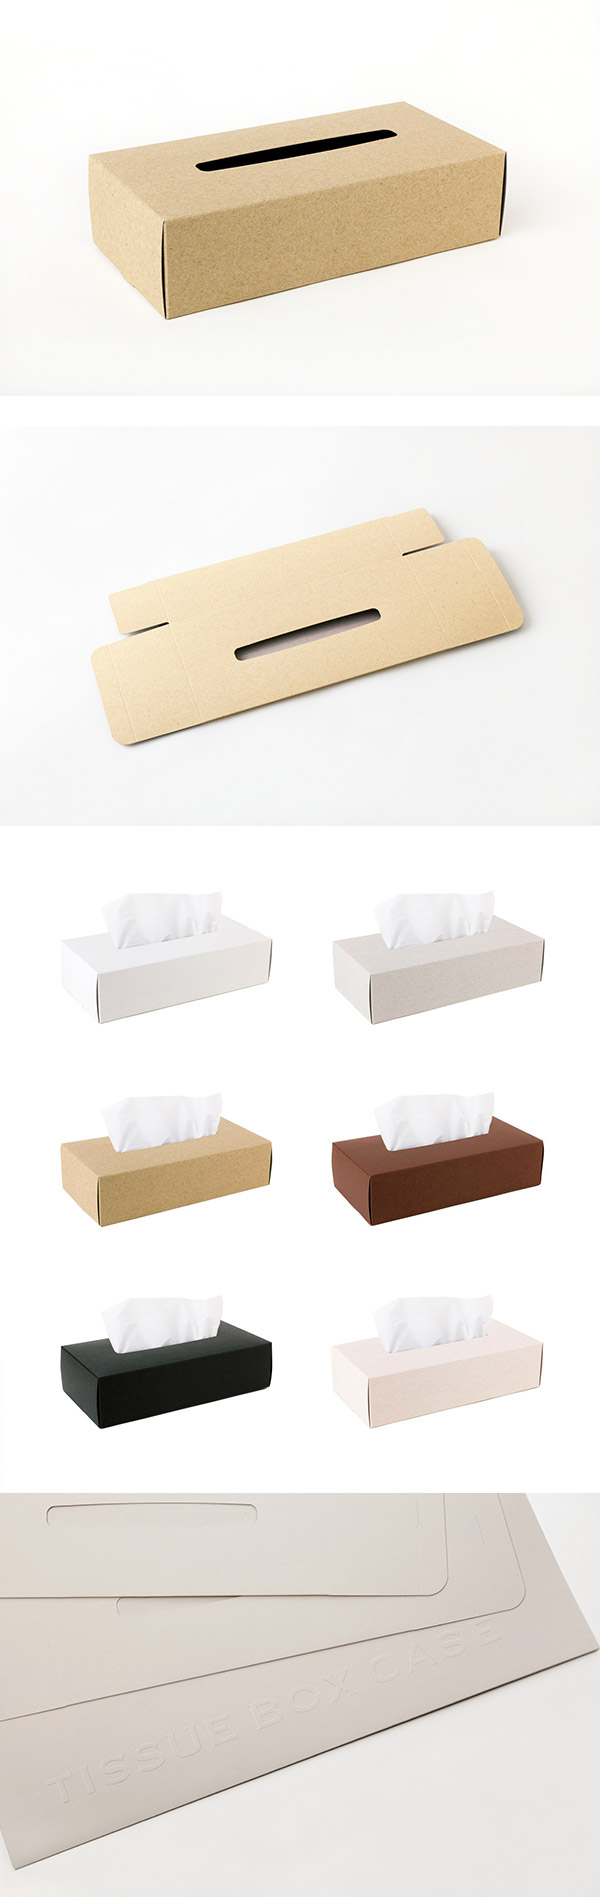 Perrocaliente TISSUE BOX CASE 面紙盒 2入 駝色